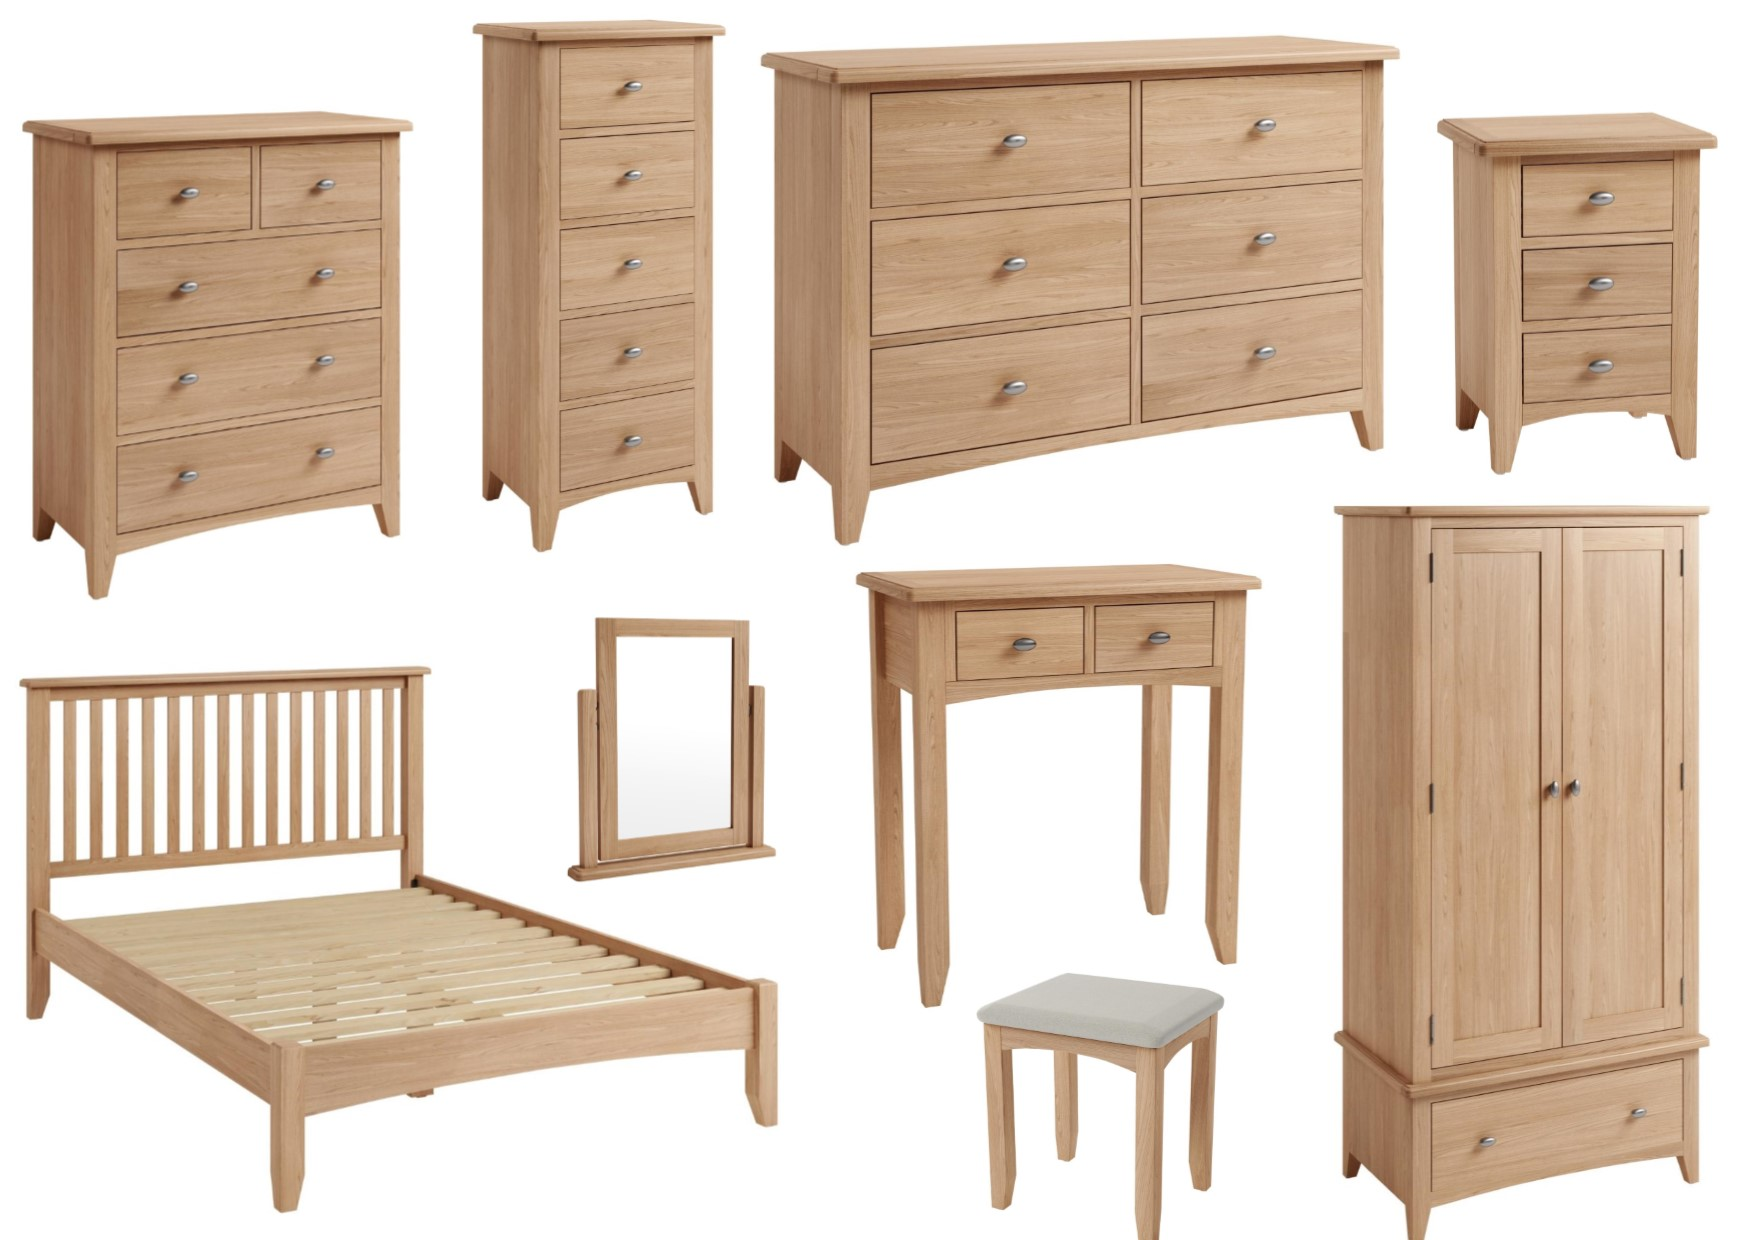 Cotswold Solid Oak Farmhouse Style Bedroom Furniture With Brushed Metal Handles Ebay